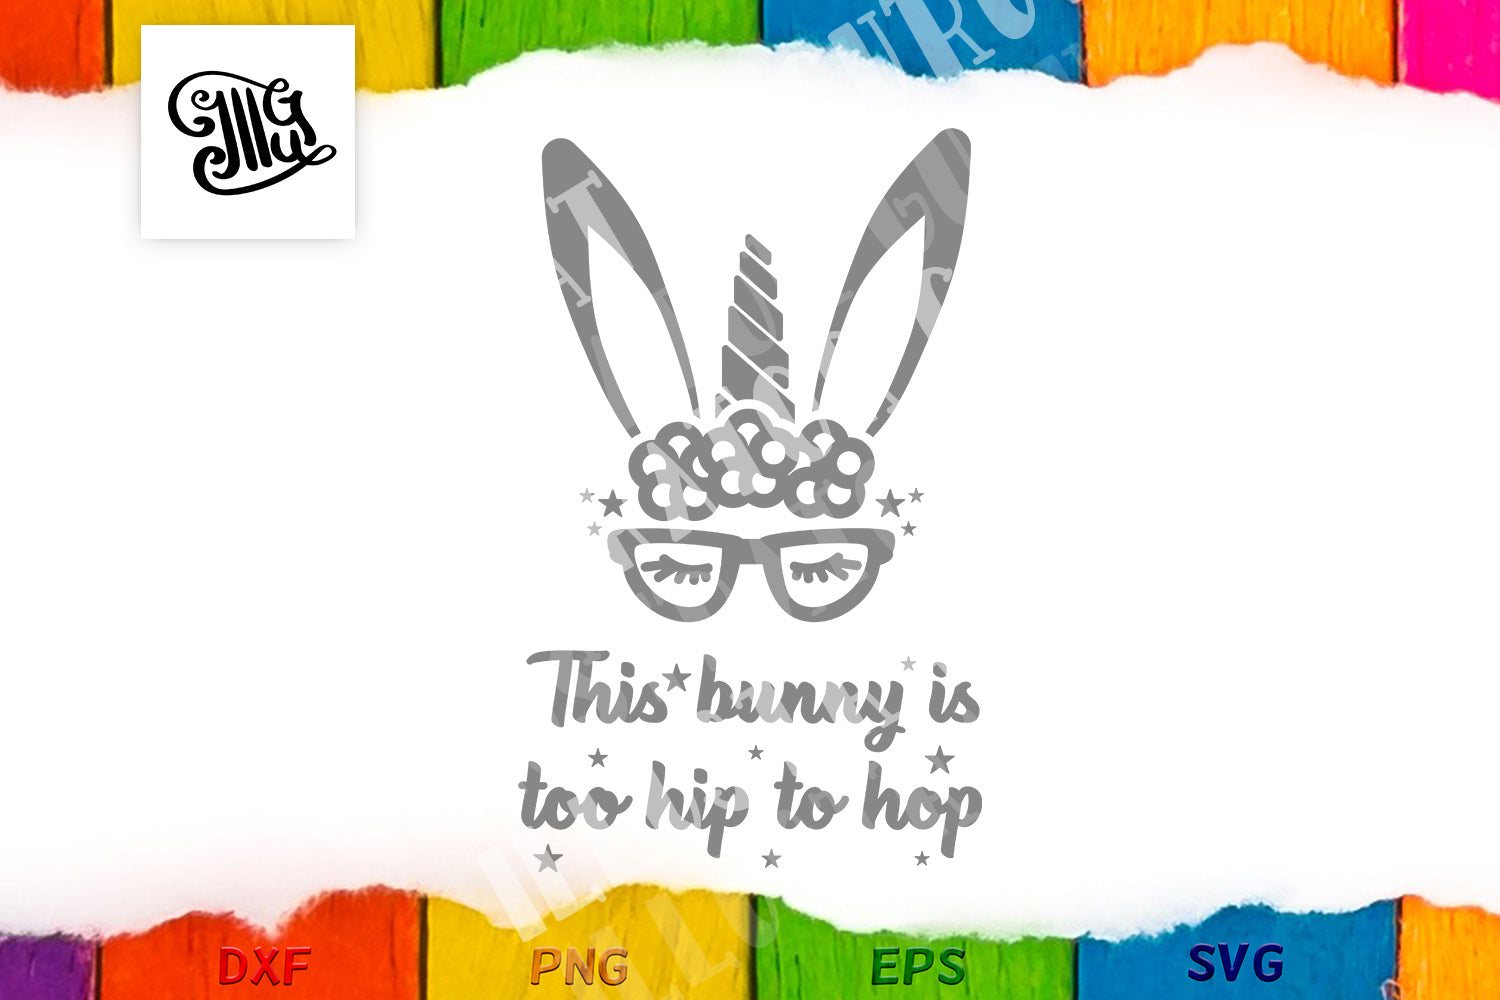 Girl Easter svg | Cool bunny svg | This bunny is too hip to hop svg | Easter bunny svg | Bunny unicorn svg | Unicorn face svg | Too hip to hop svg-by Illustrator Guru